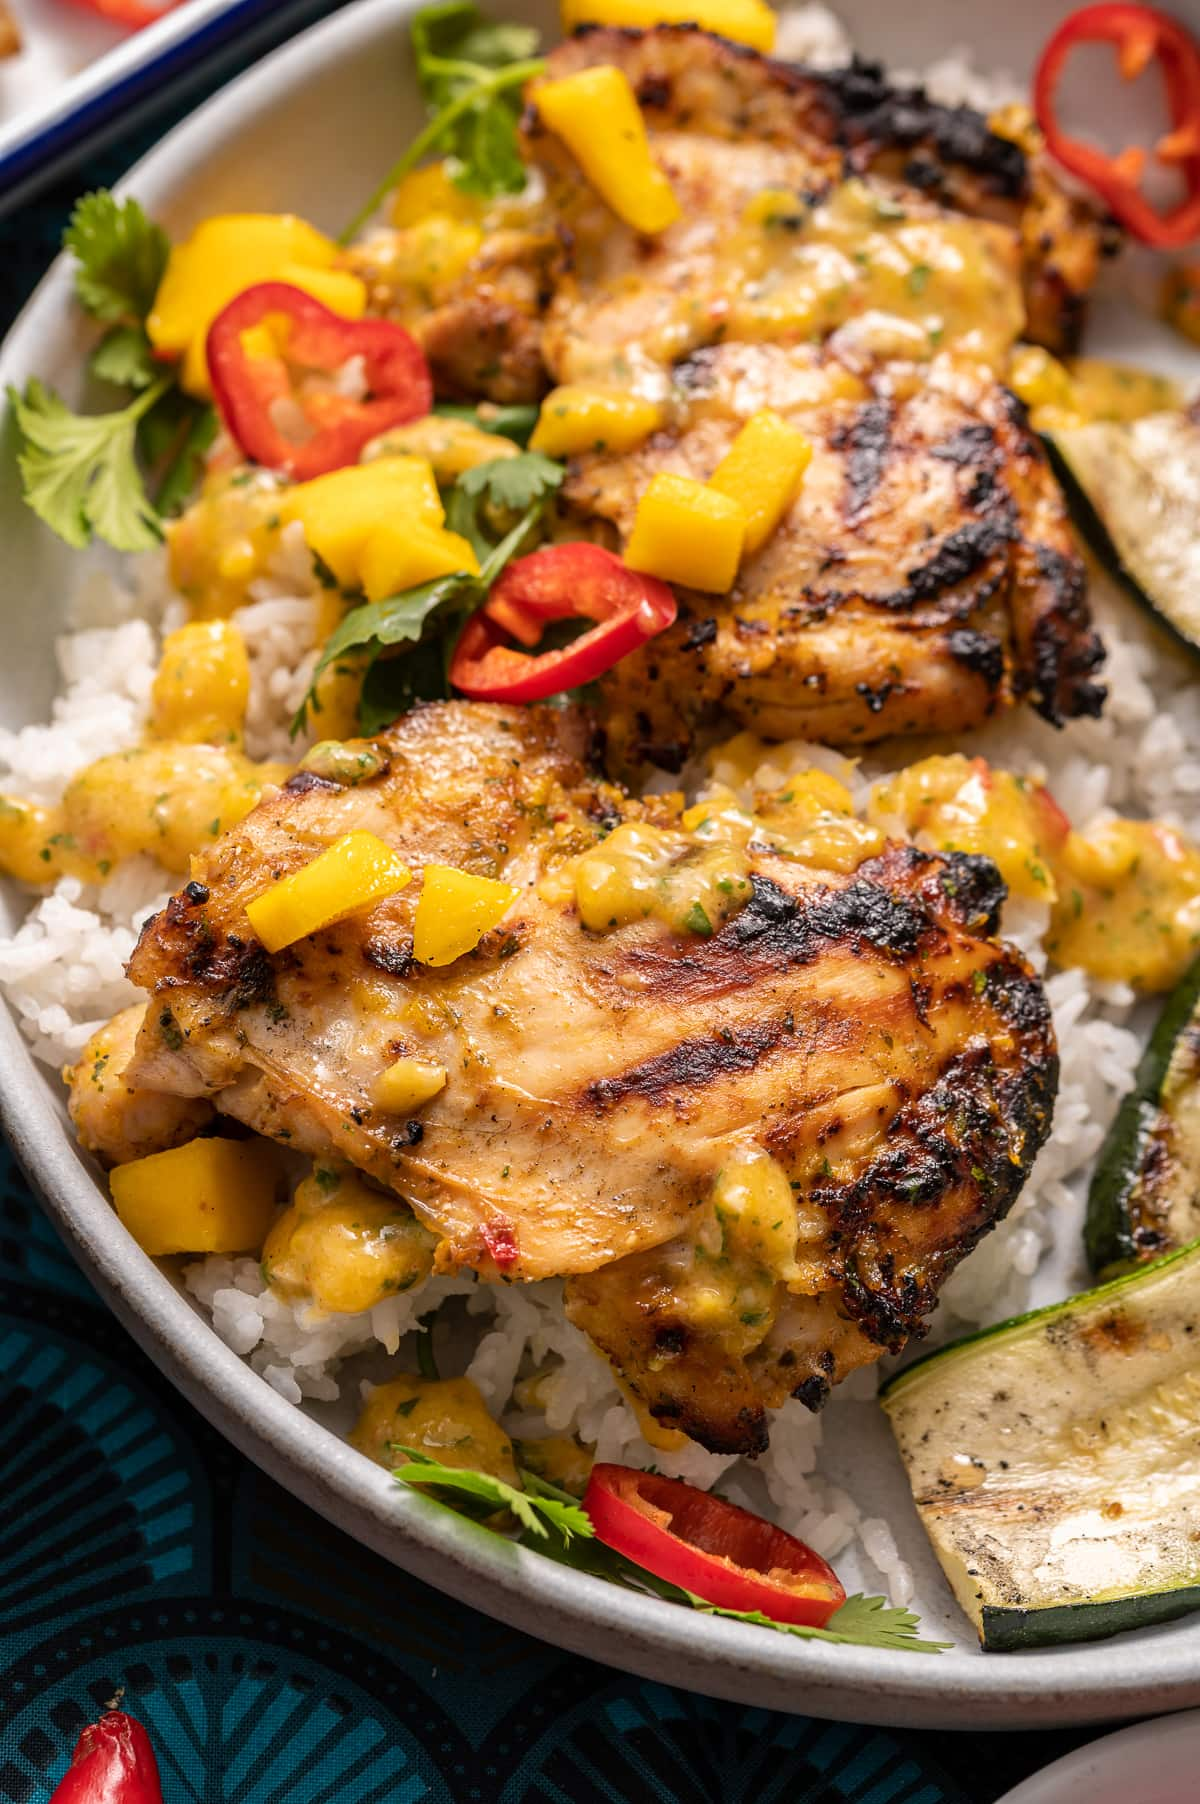 grilled chicken on a plate with mango and red chili slices cilanto pieces grilled zucchini slices